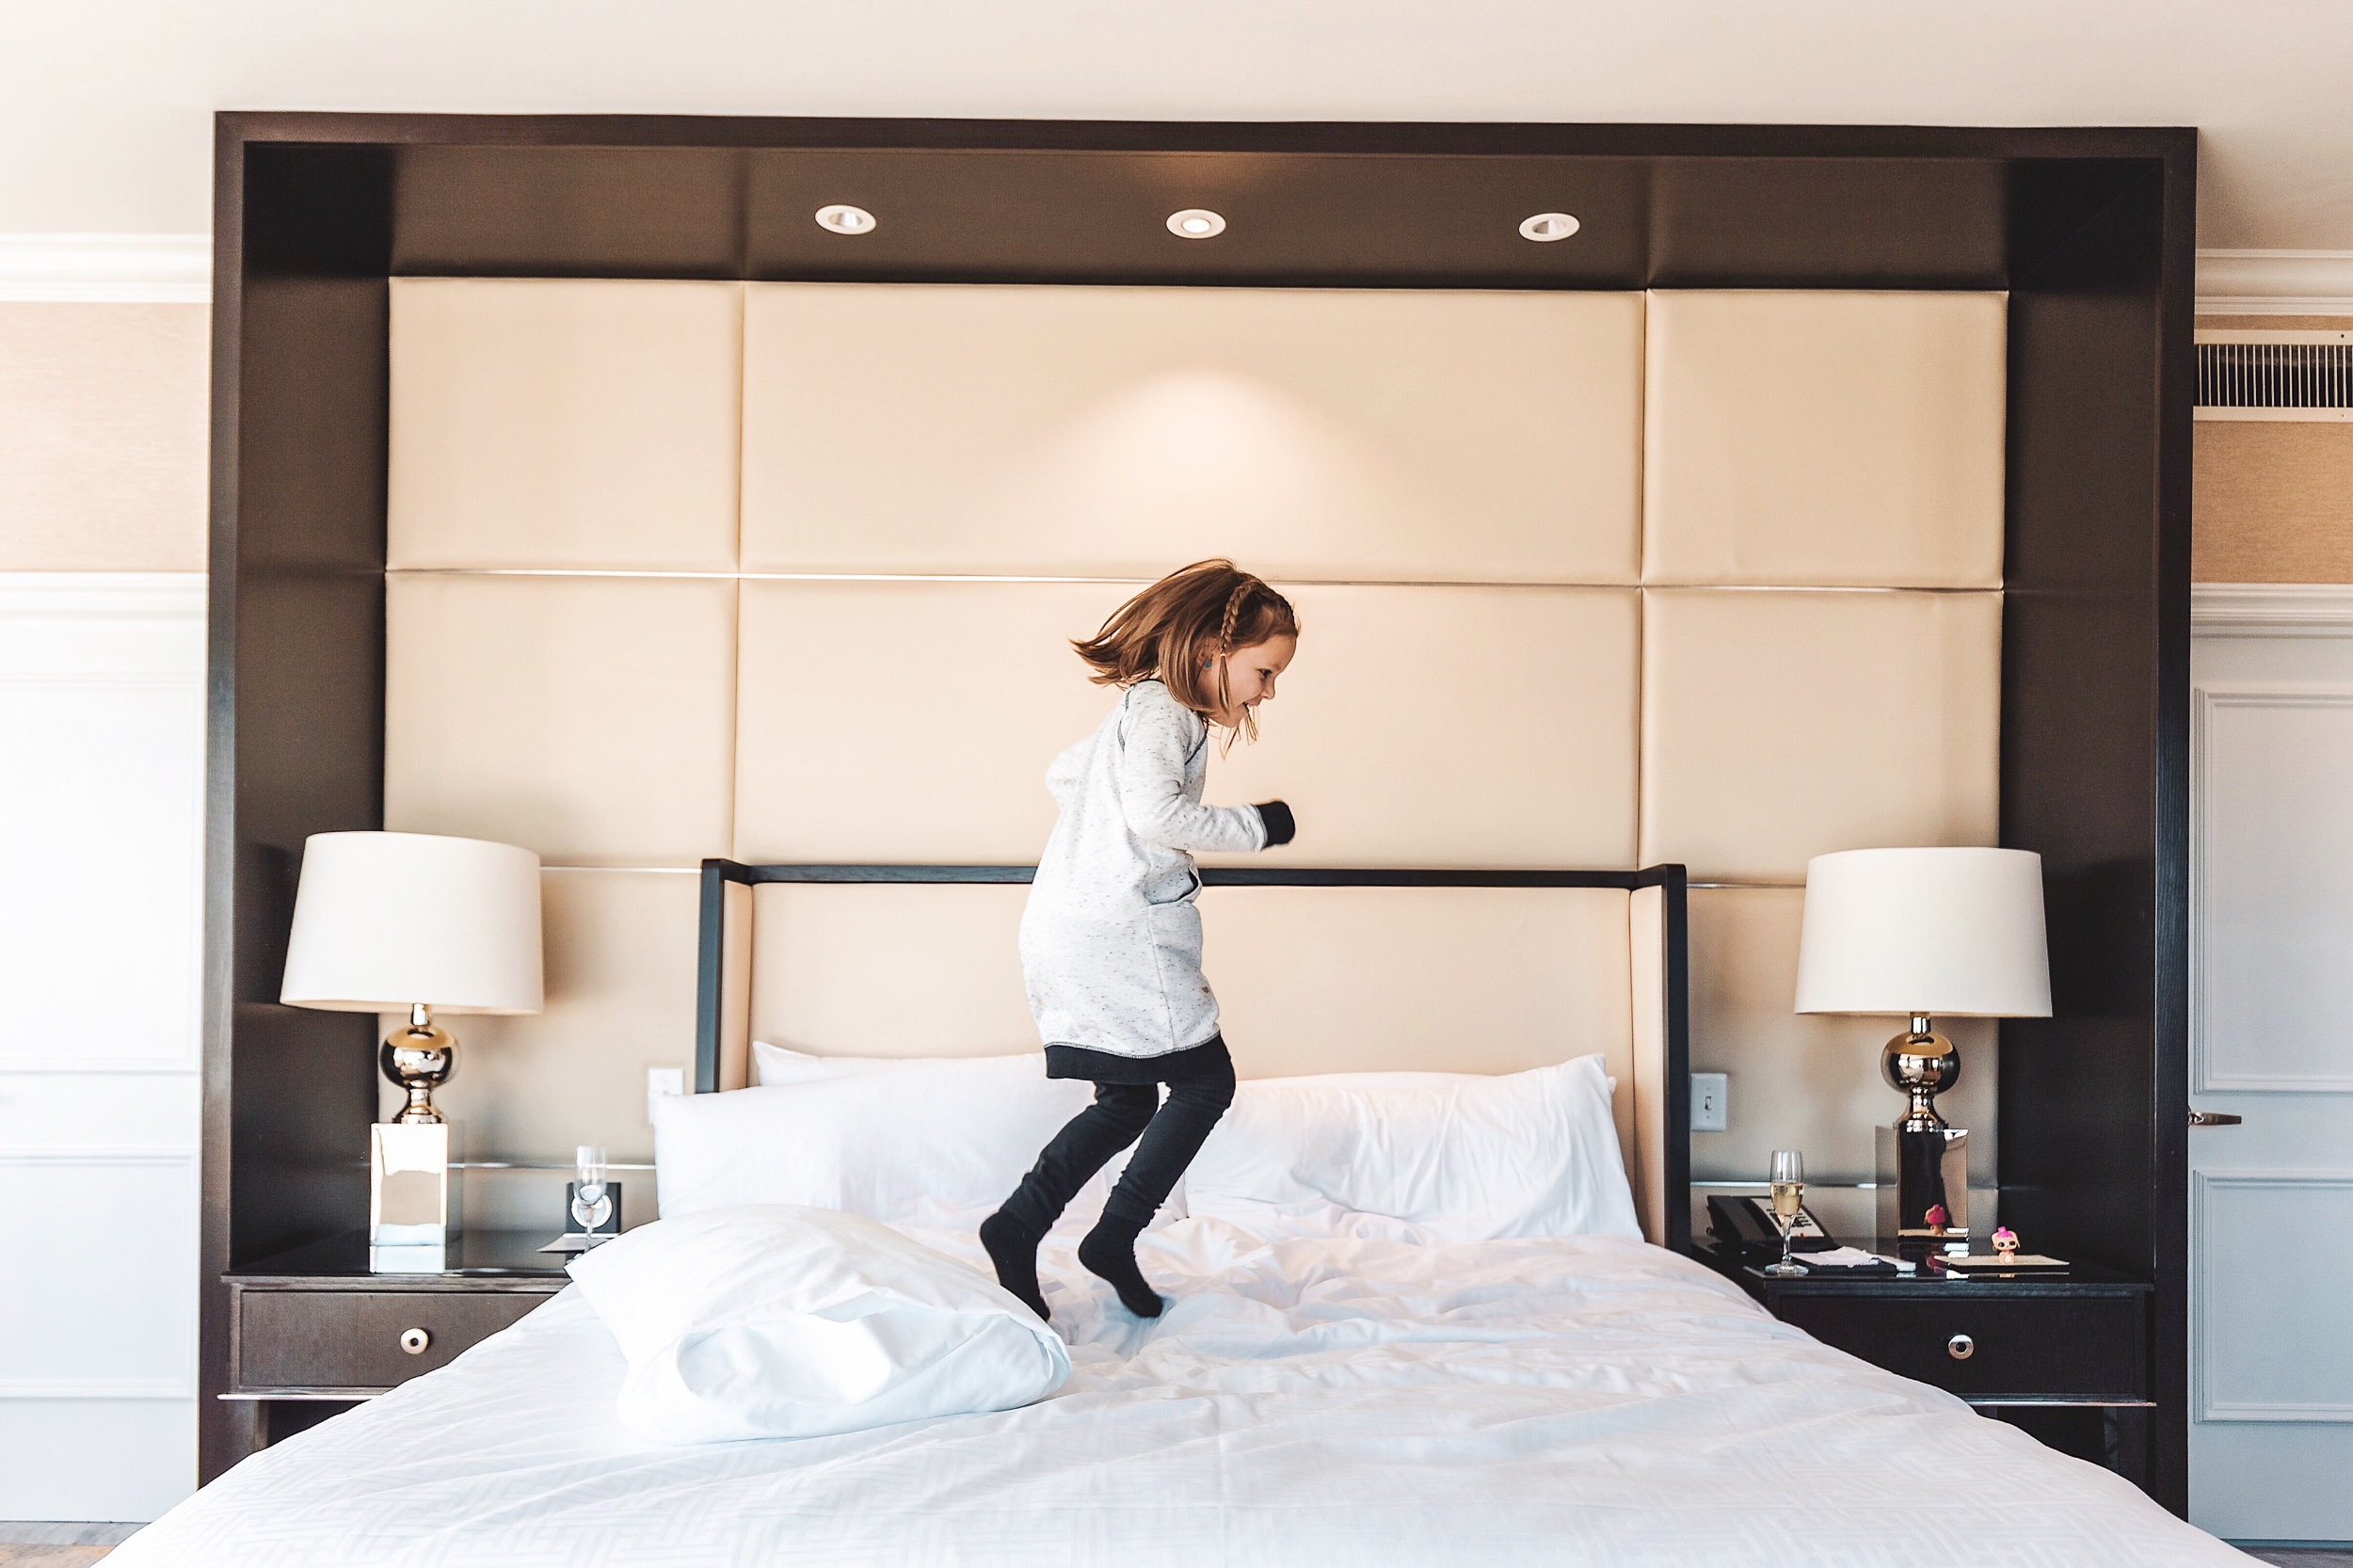 Jumping around in excitement at The Fairmont San Francisco